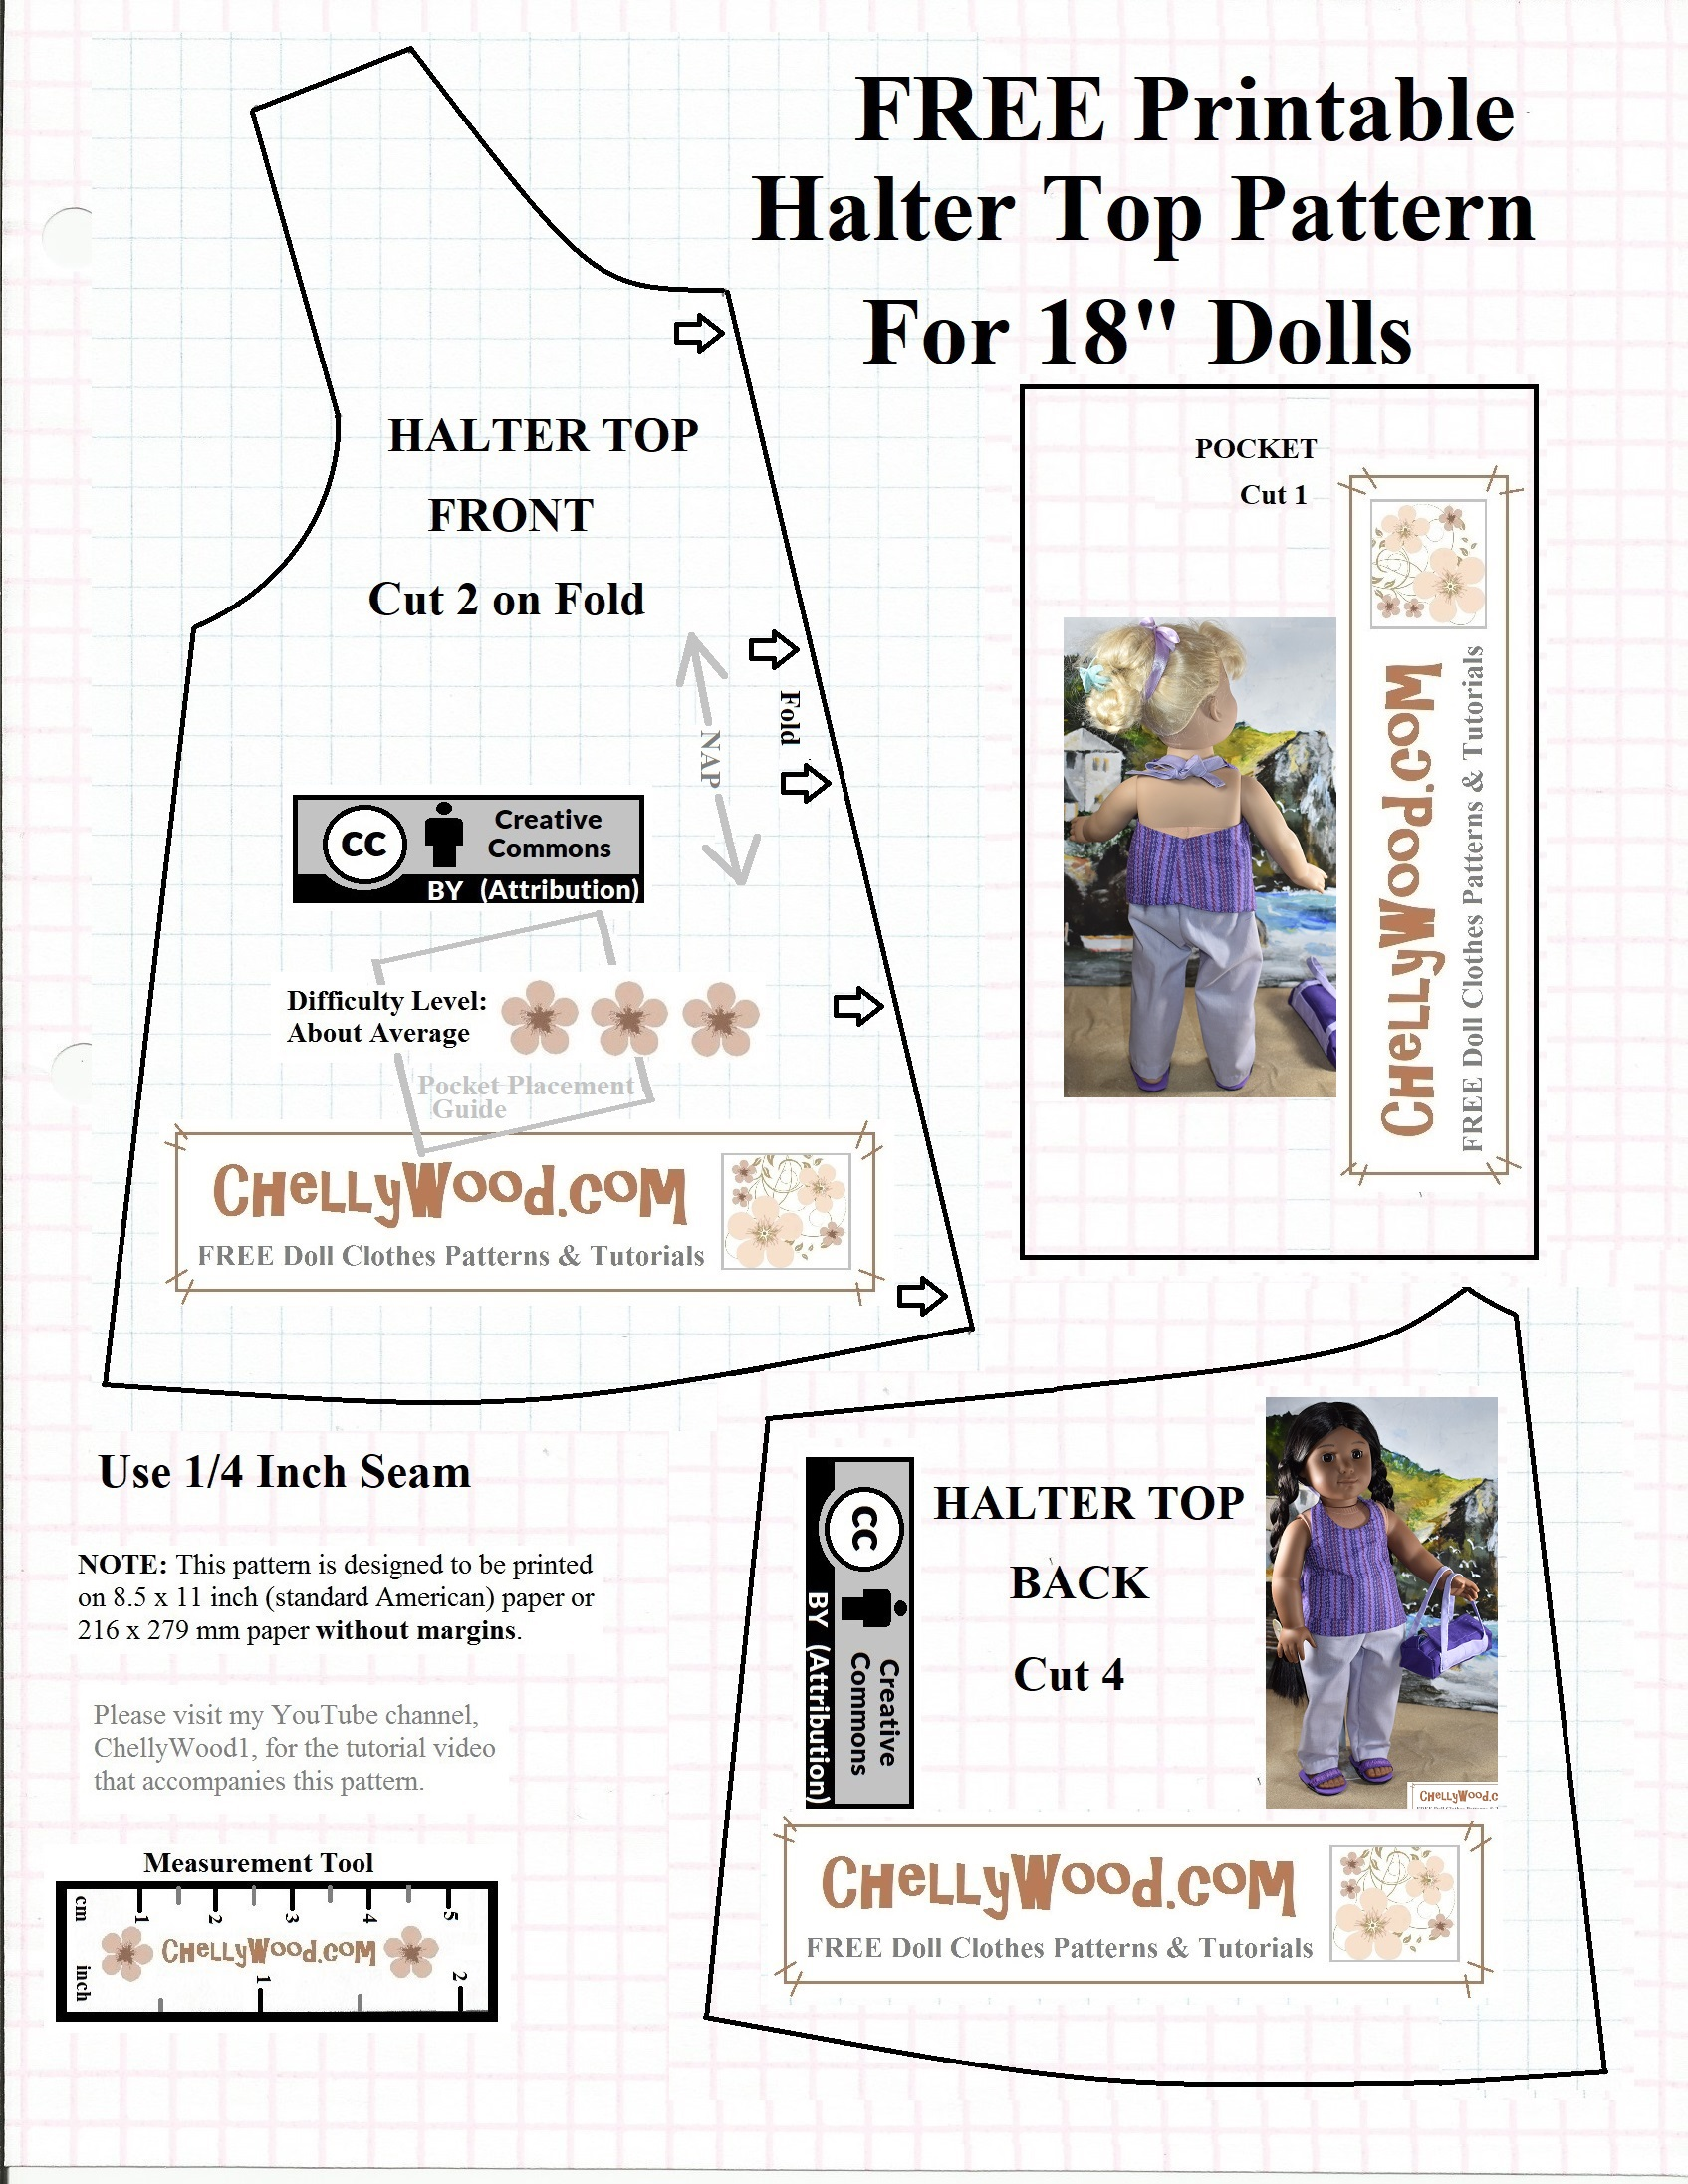 Free Agdoll Summer Shirt Pattern Chellywood Com Sewing 4 Dolls Free Doll Clothes Patterns